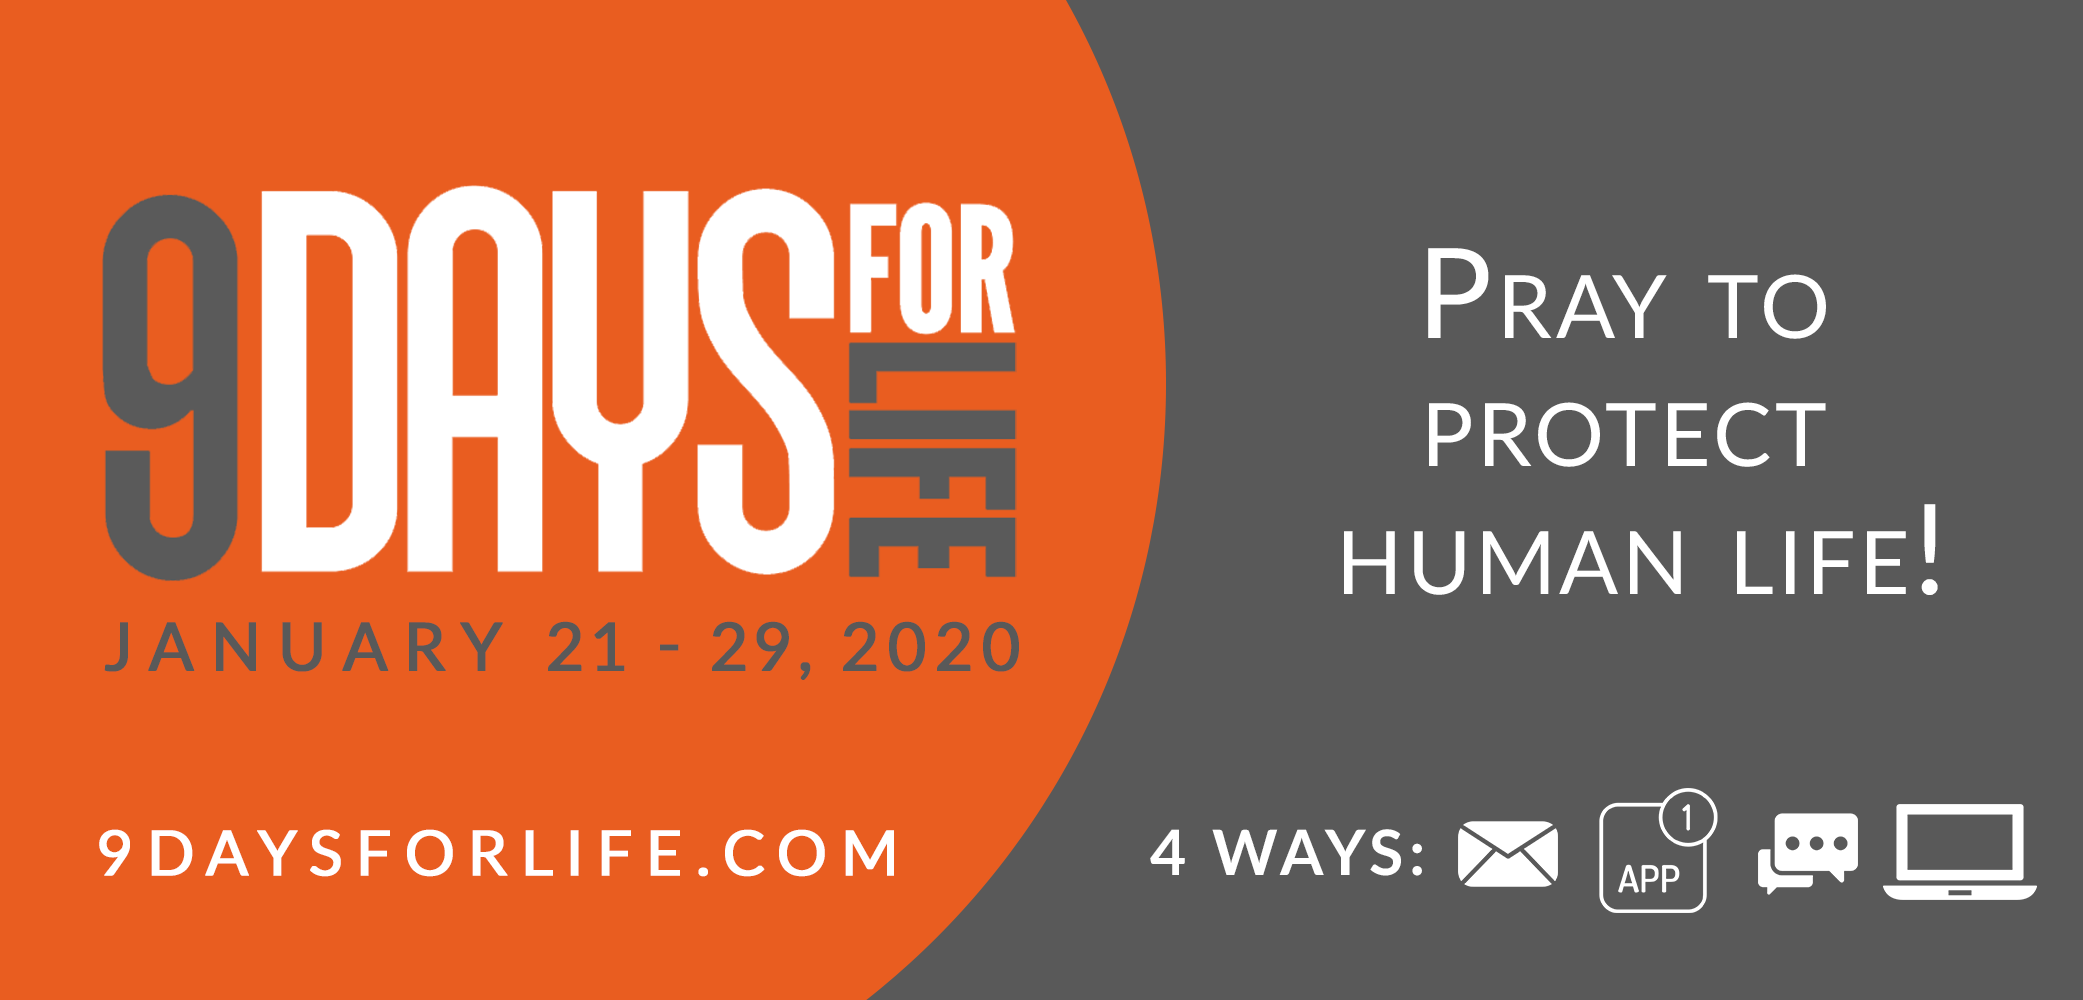 USCCB's '9 Days for Life' prayer, action campaign takes place Jan. 21-29